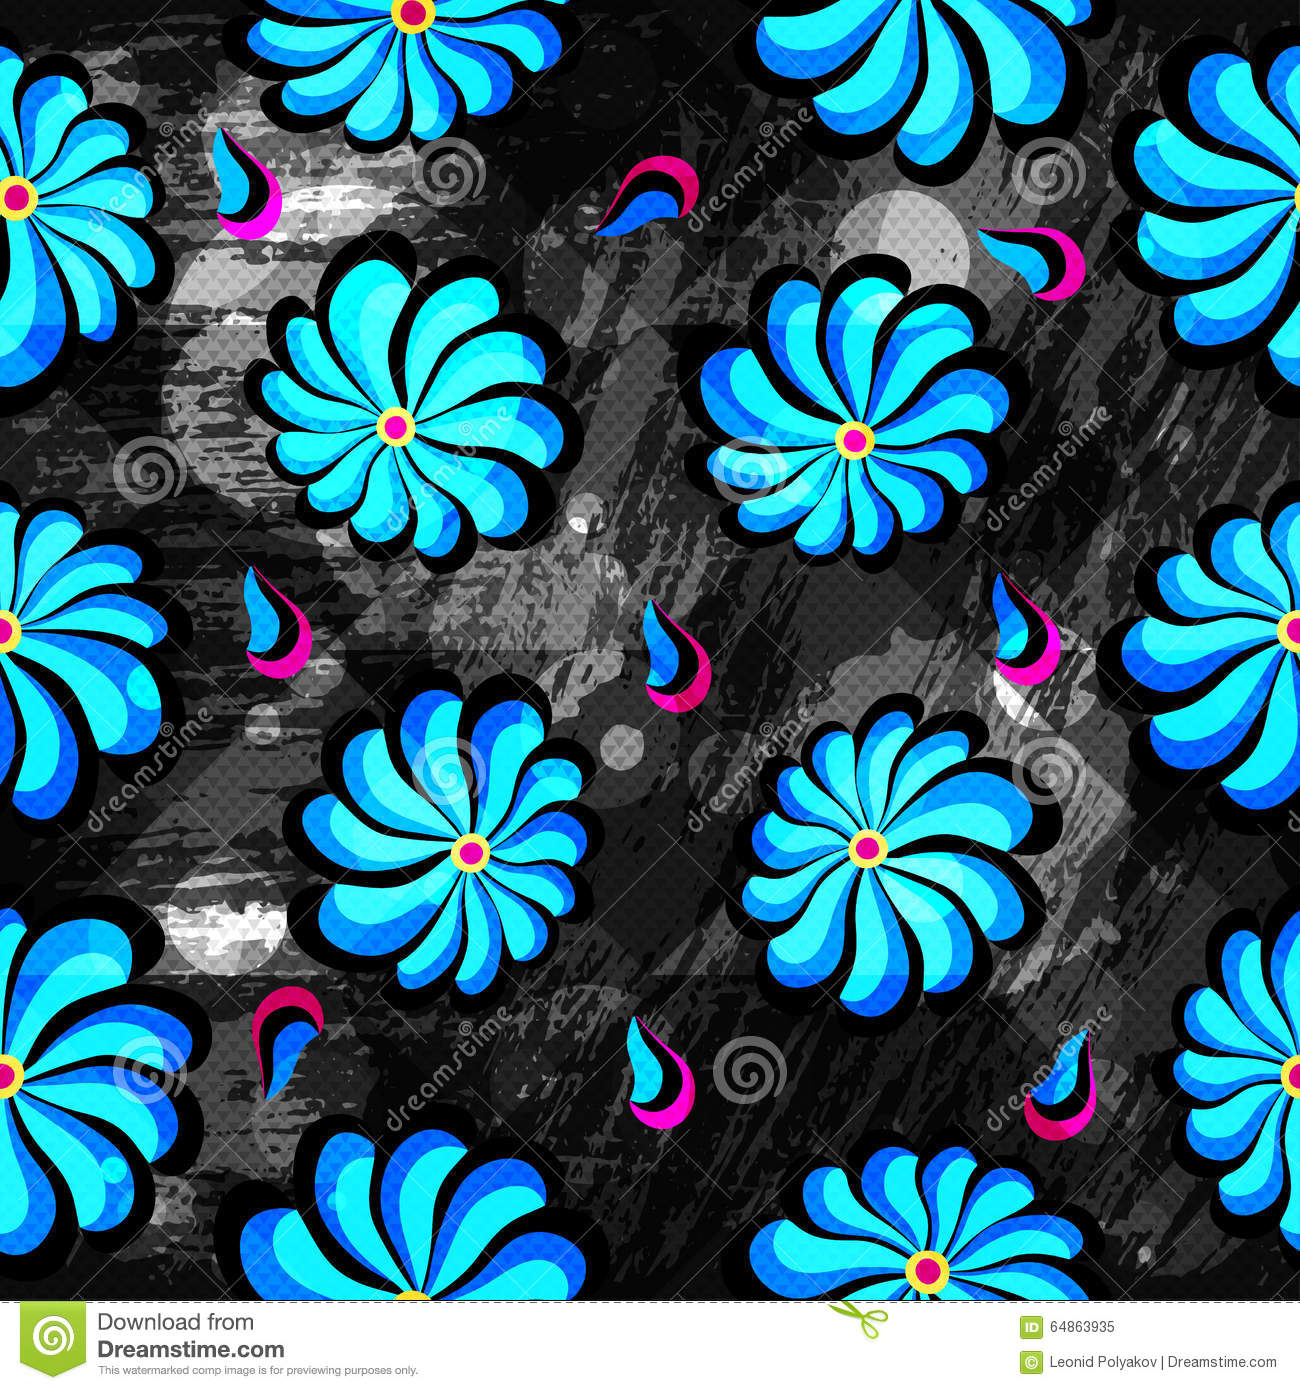 Fabric texture endless pattern black and blue stock photo image abstract blue flowers on a black background seamless pattern grunge texture royalty free stock photo dhlflorist Images